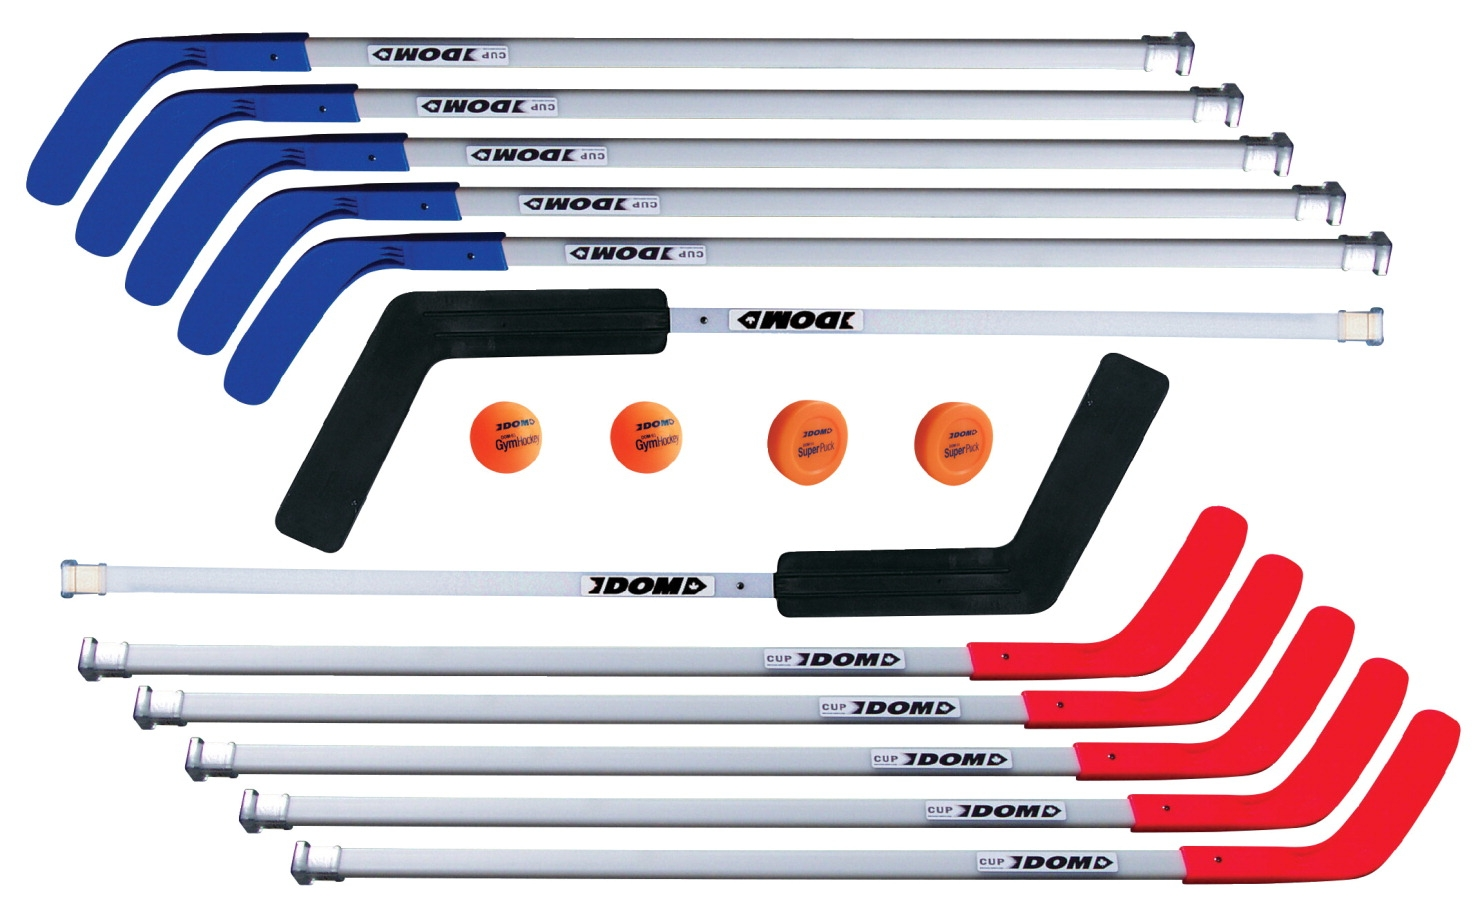 Dom 52 In Pro Replacement Floor Hockey Stick; Blue - 032350 - Stick And Ball Games Floorball 032350